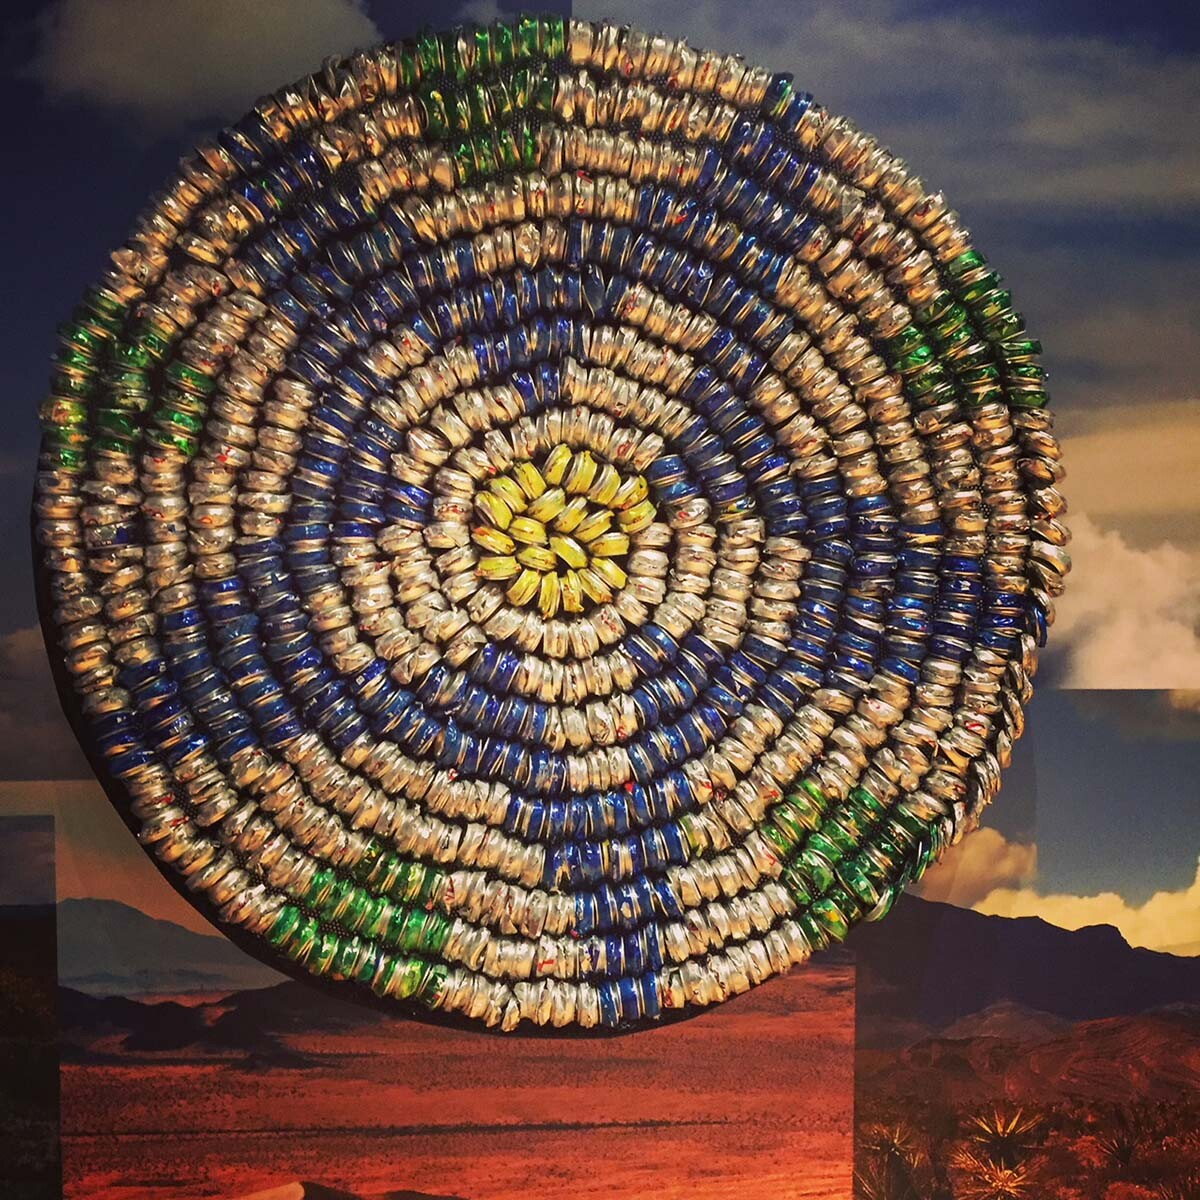 """Continuum Basket: Flora"" by Gerald Clarke (Cahuilla) on display in ""Human Nature"" exhibit at the Autry Museum of the American West 